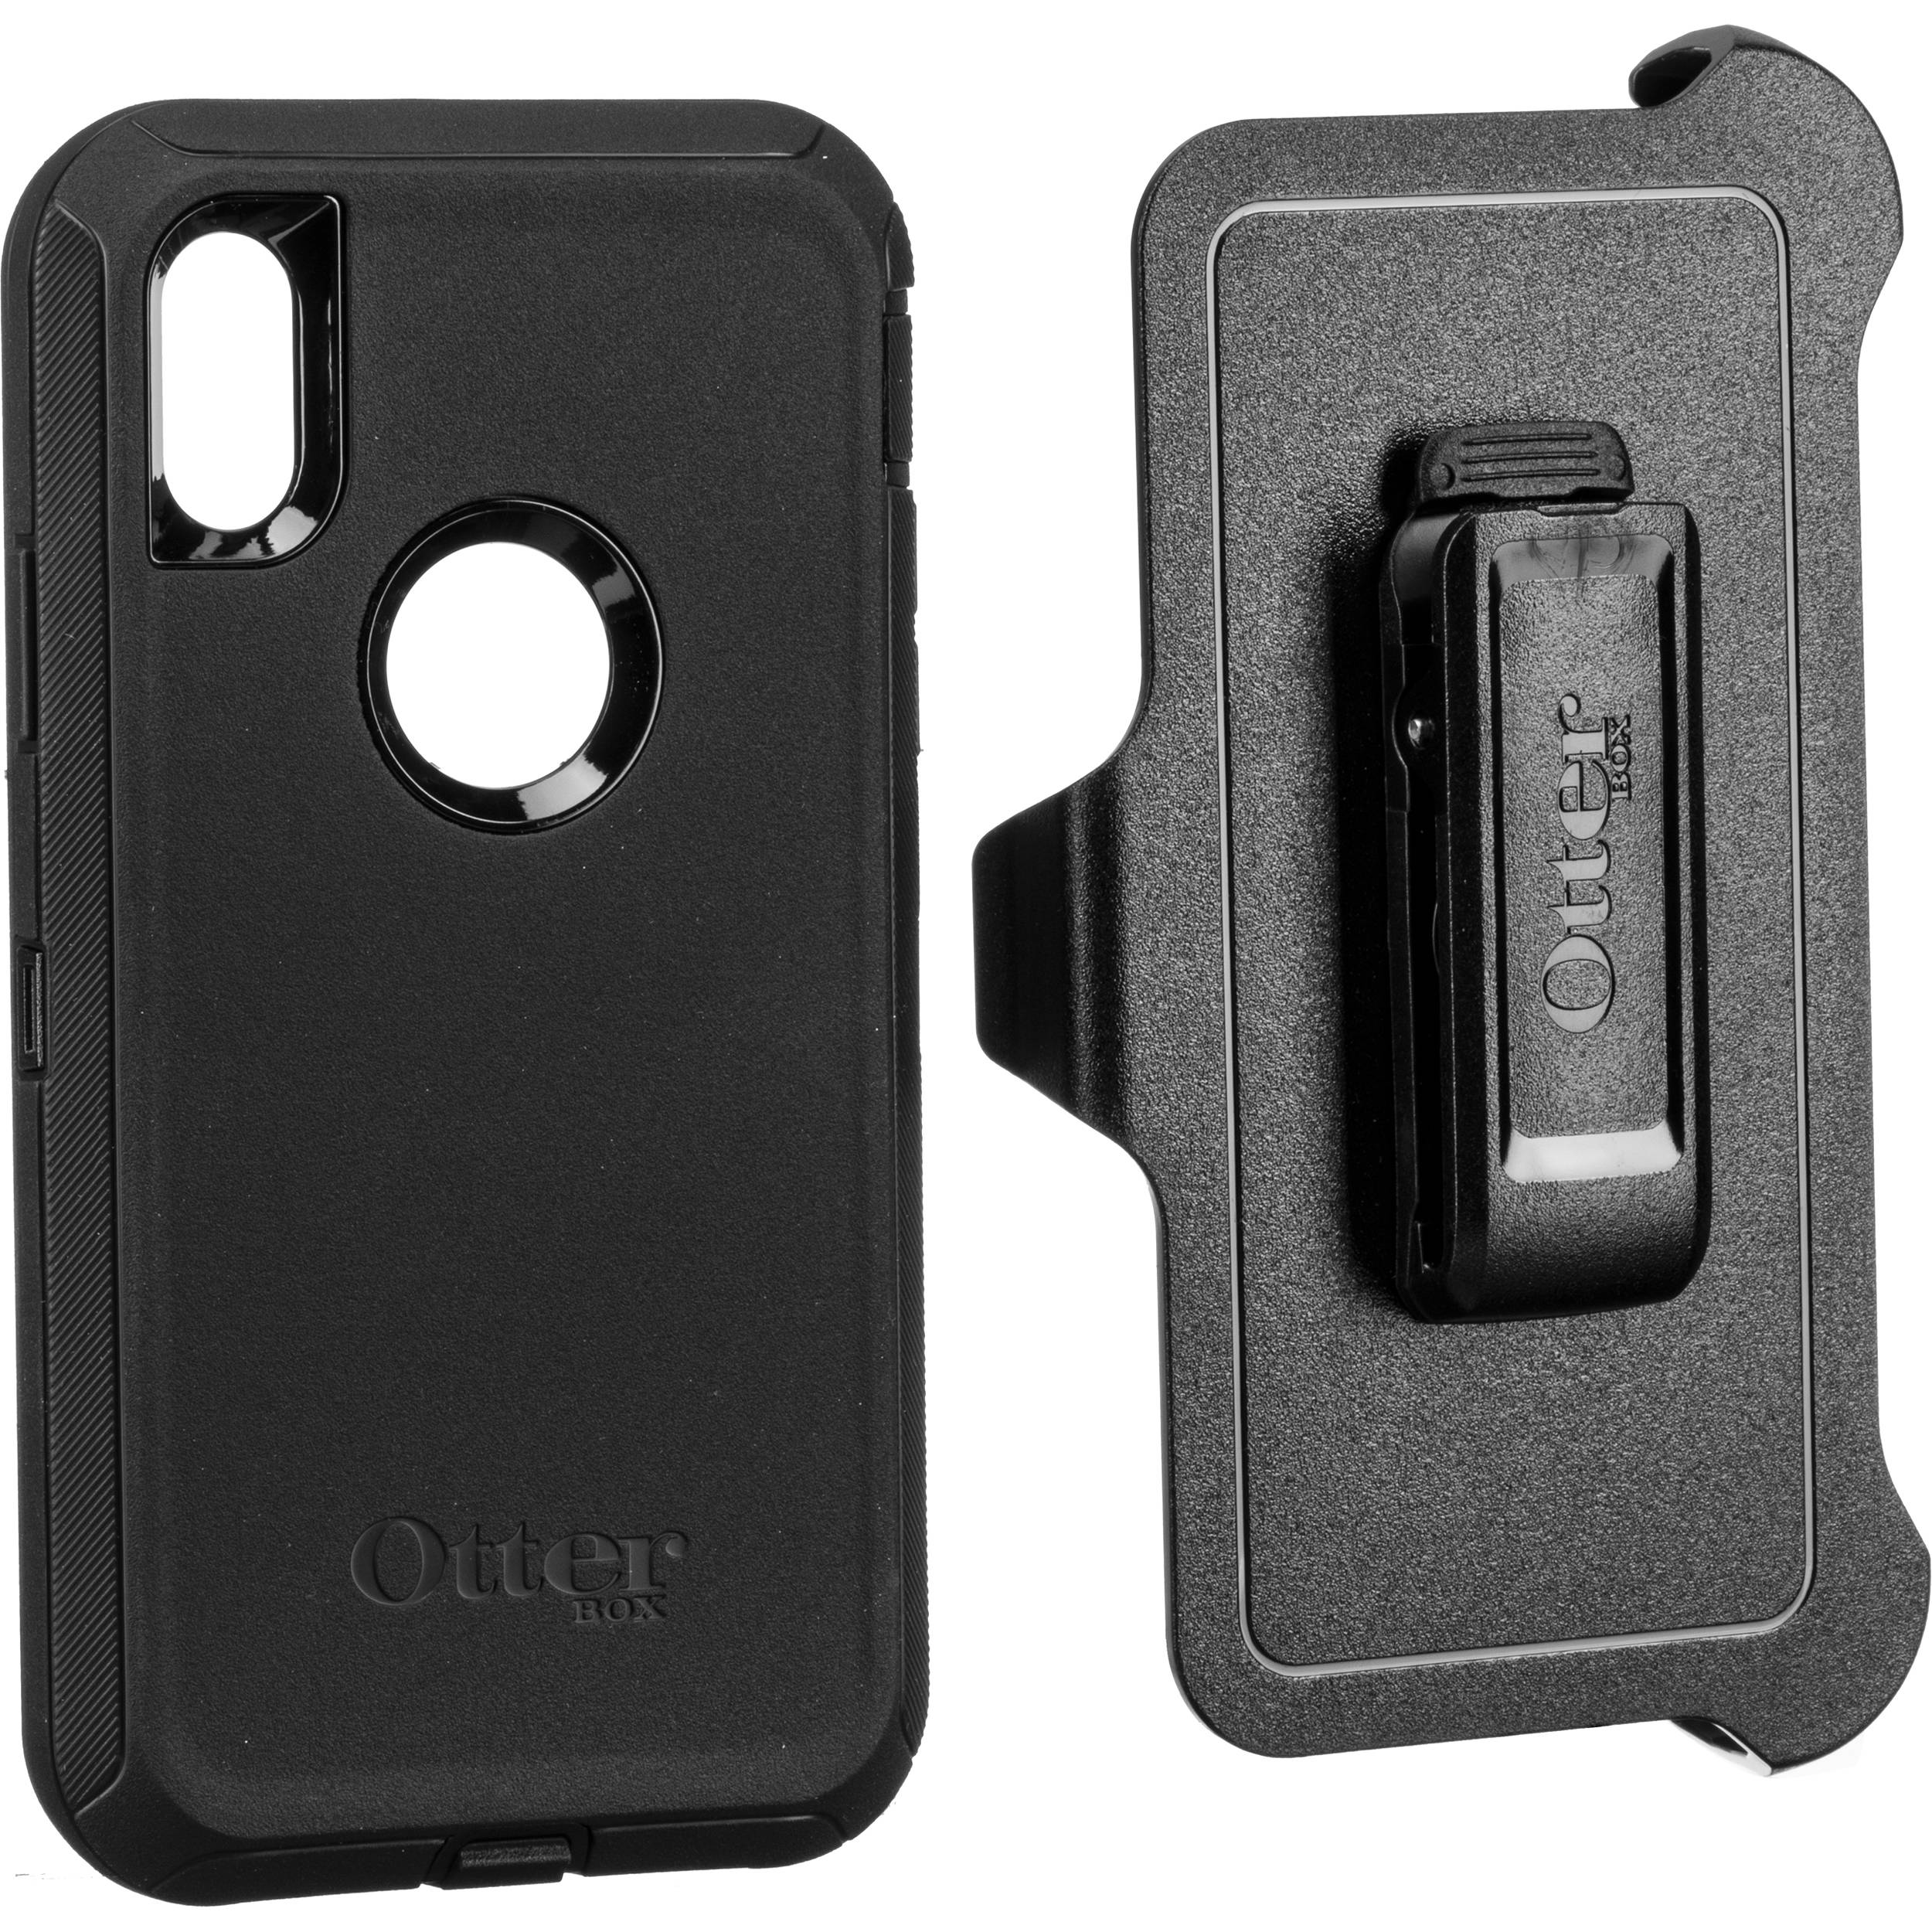 wholesale dealer 977b6 7ee69 OtterBox Defender Series Case for iPhone XR (Black)